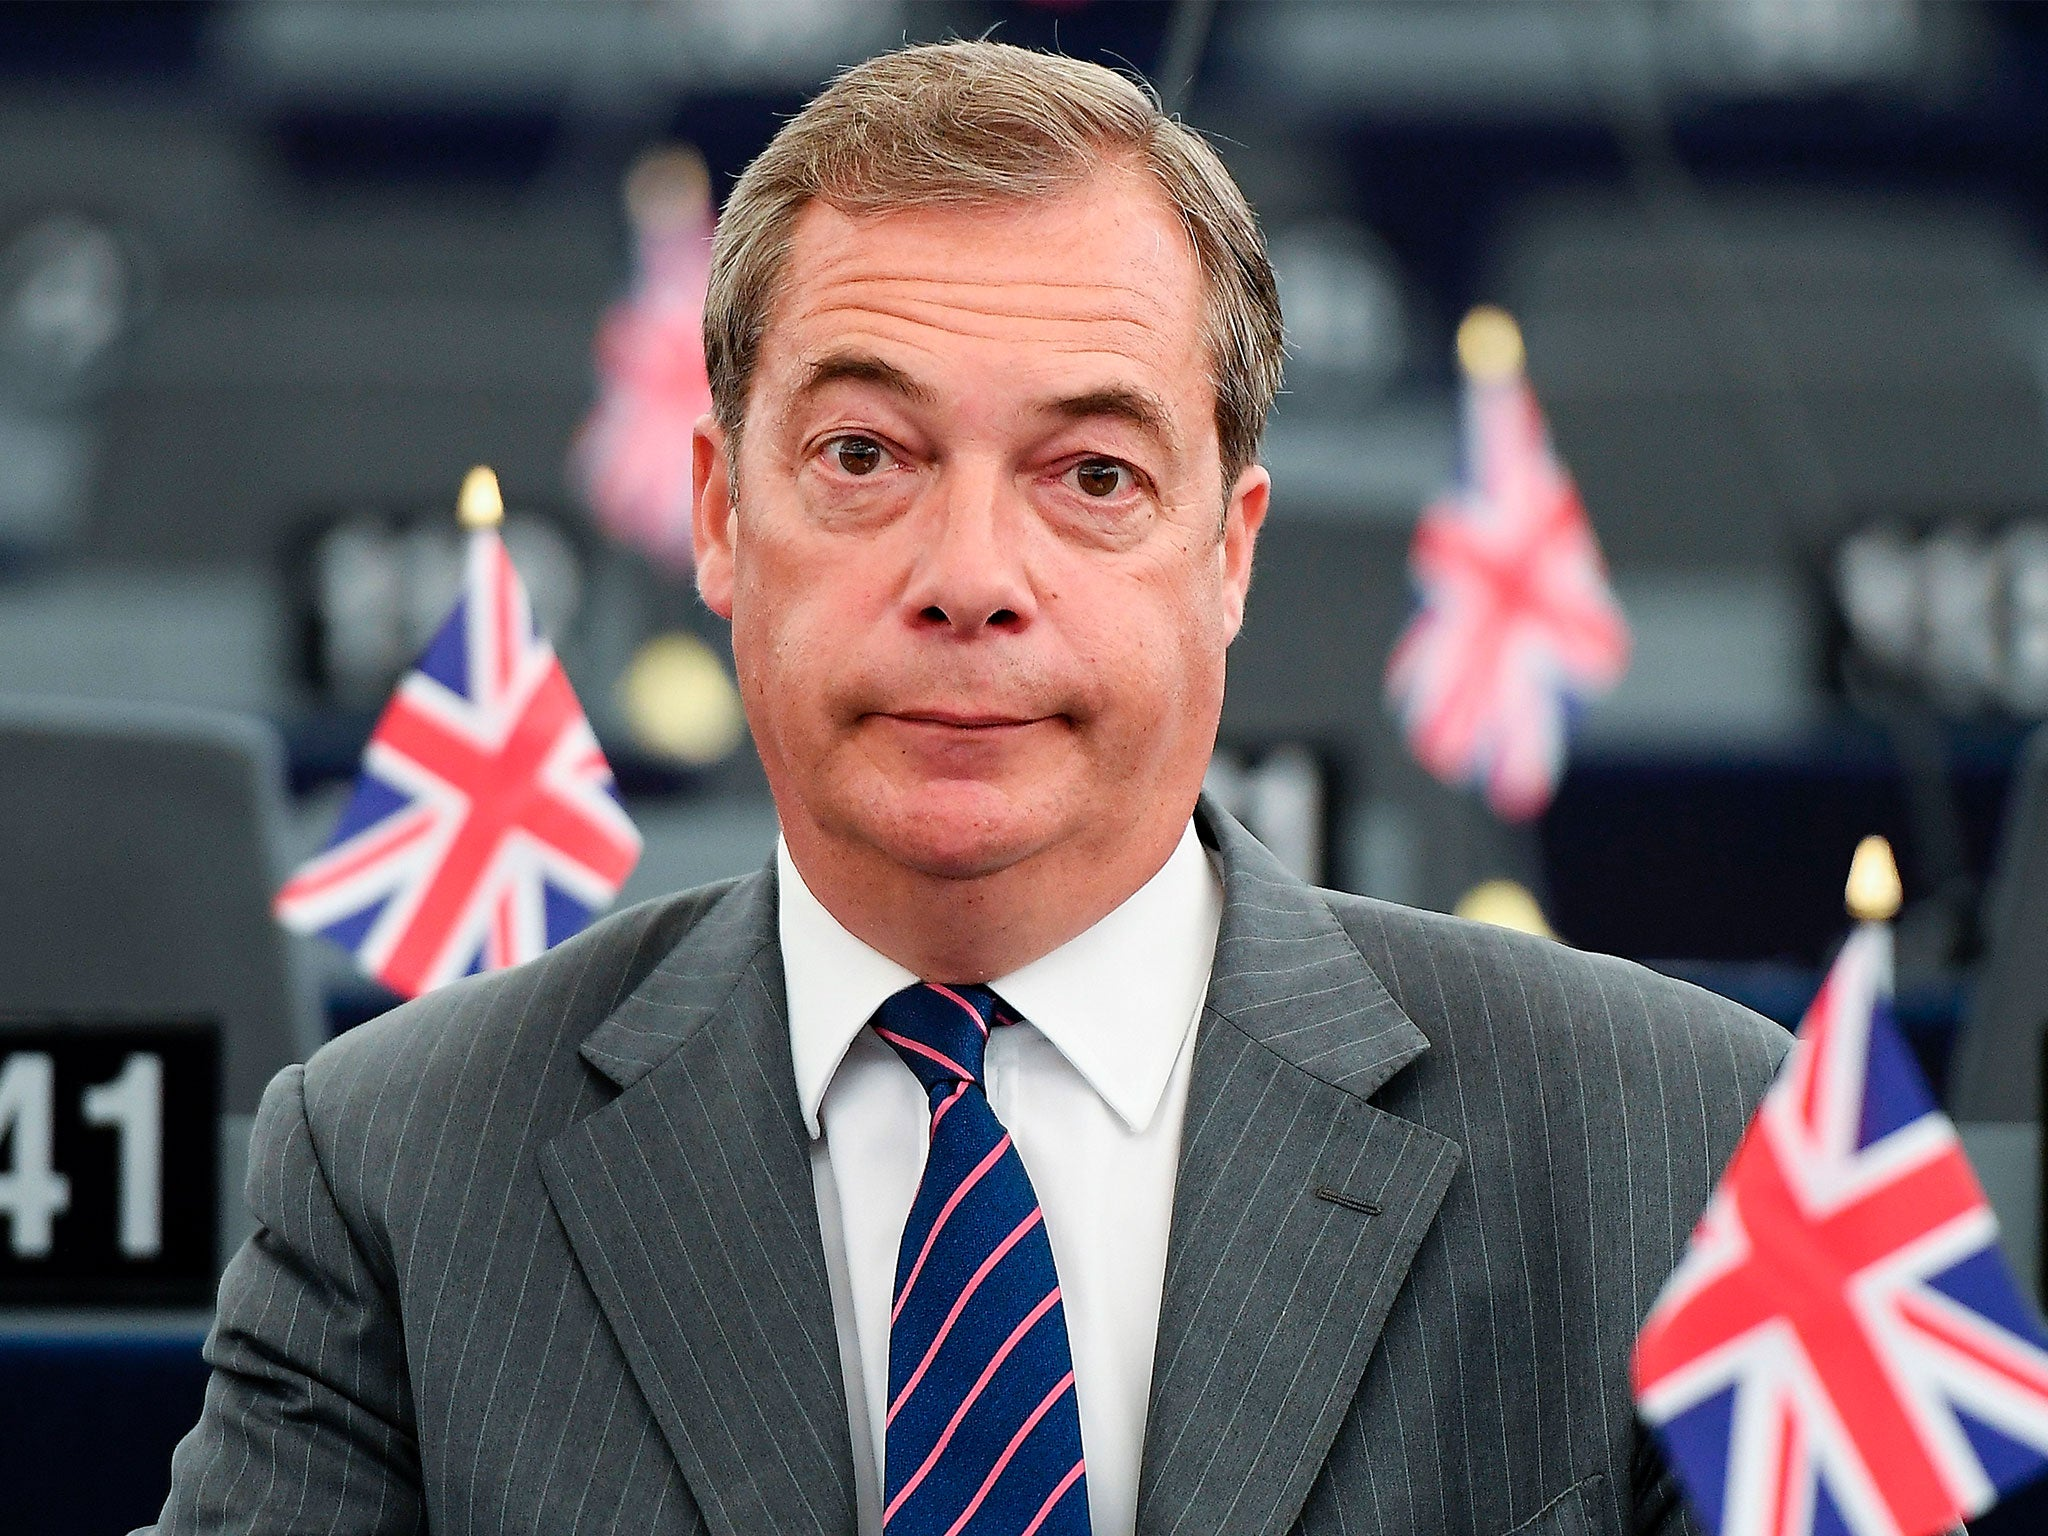 Nigel Farage to address far-right rally in Germany | The ...